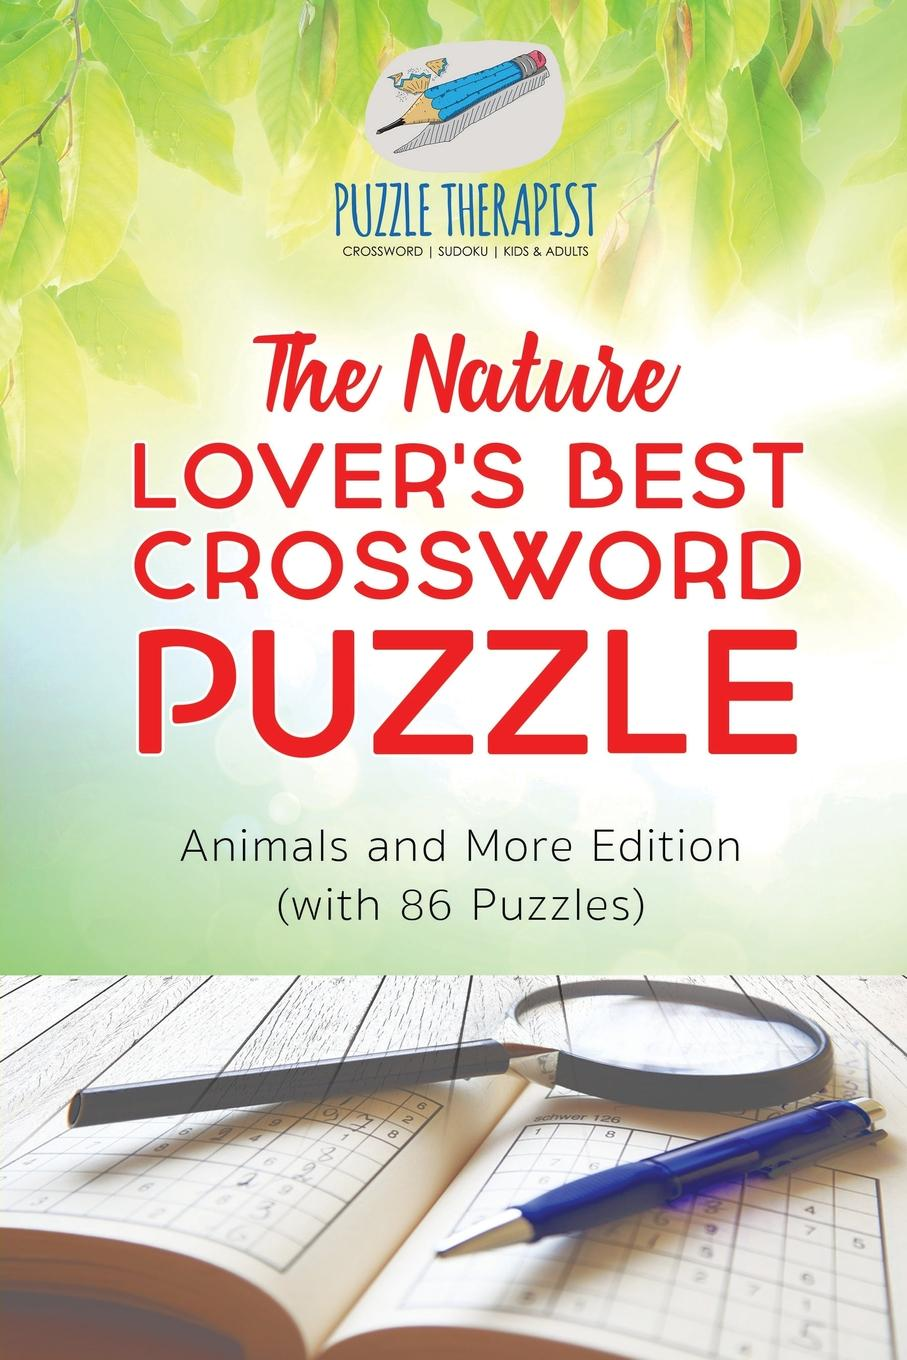 Puzzle Therapist The Nature Lover.s Best Crossword Puzzle . Animals and More Edition (with 86 Puzzles) patterns of exchange